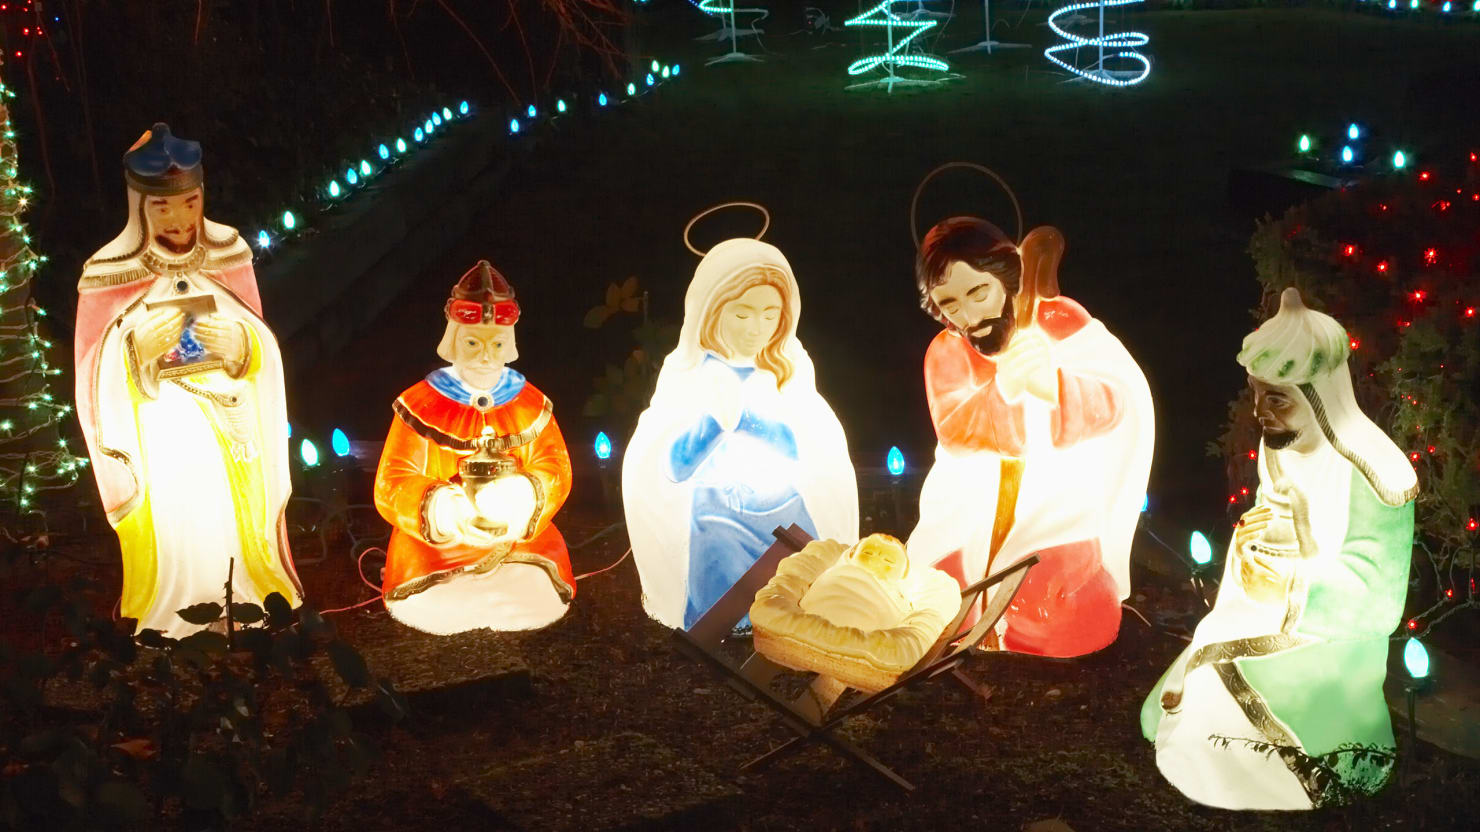 Should Christians Celebrate the Birth of Paul, Not Jesus?